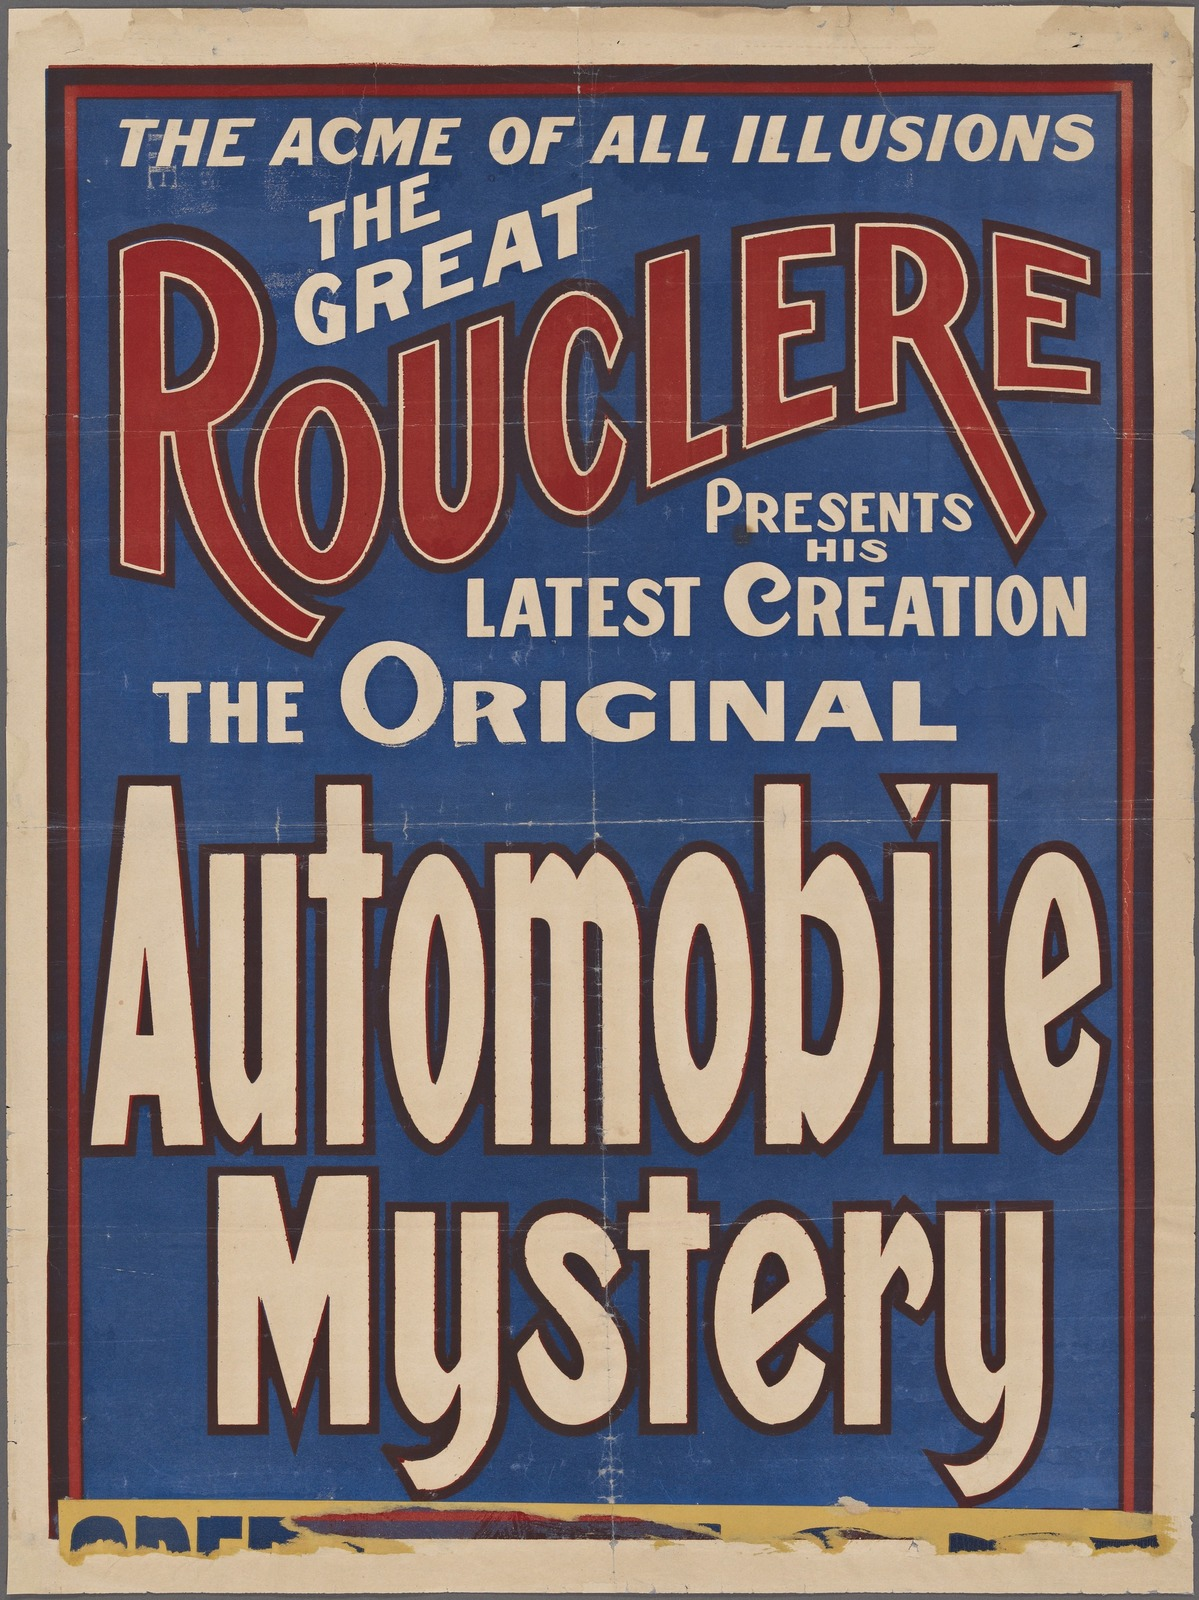 The great Rouclere: the original automobile mystery